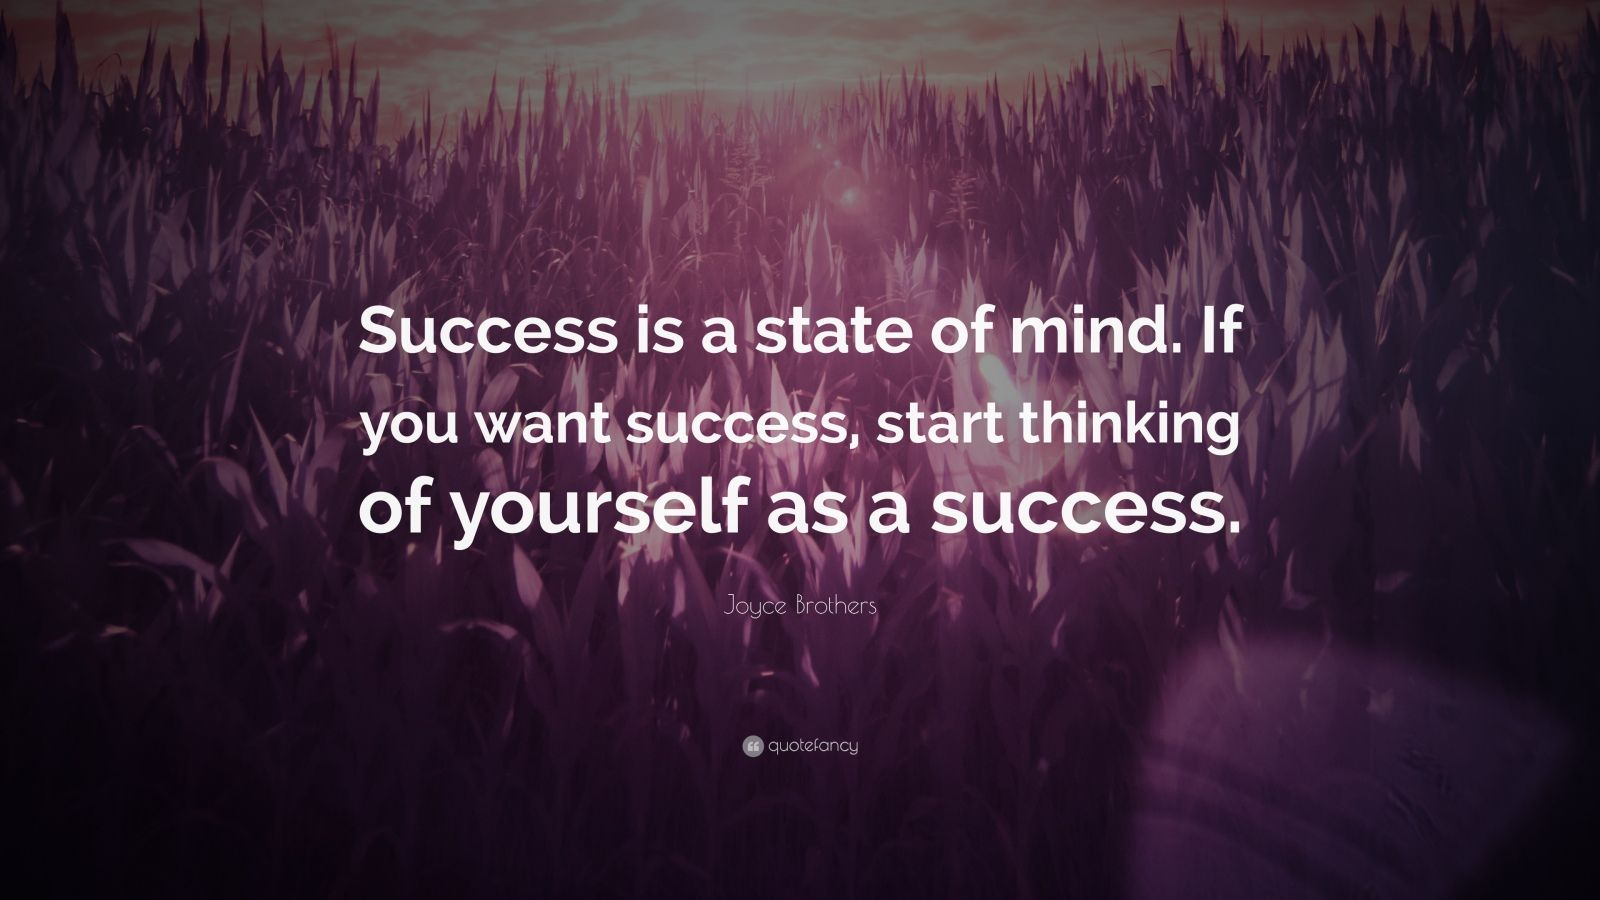 Business Success Quotes Wallpaper Joyce Brothers Quote Success Is A State Of Mind If You